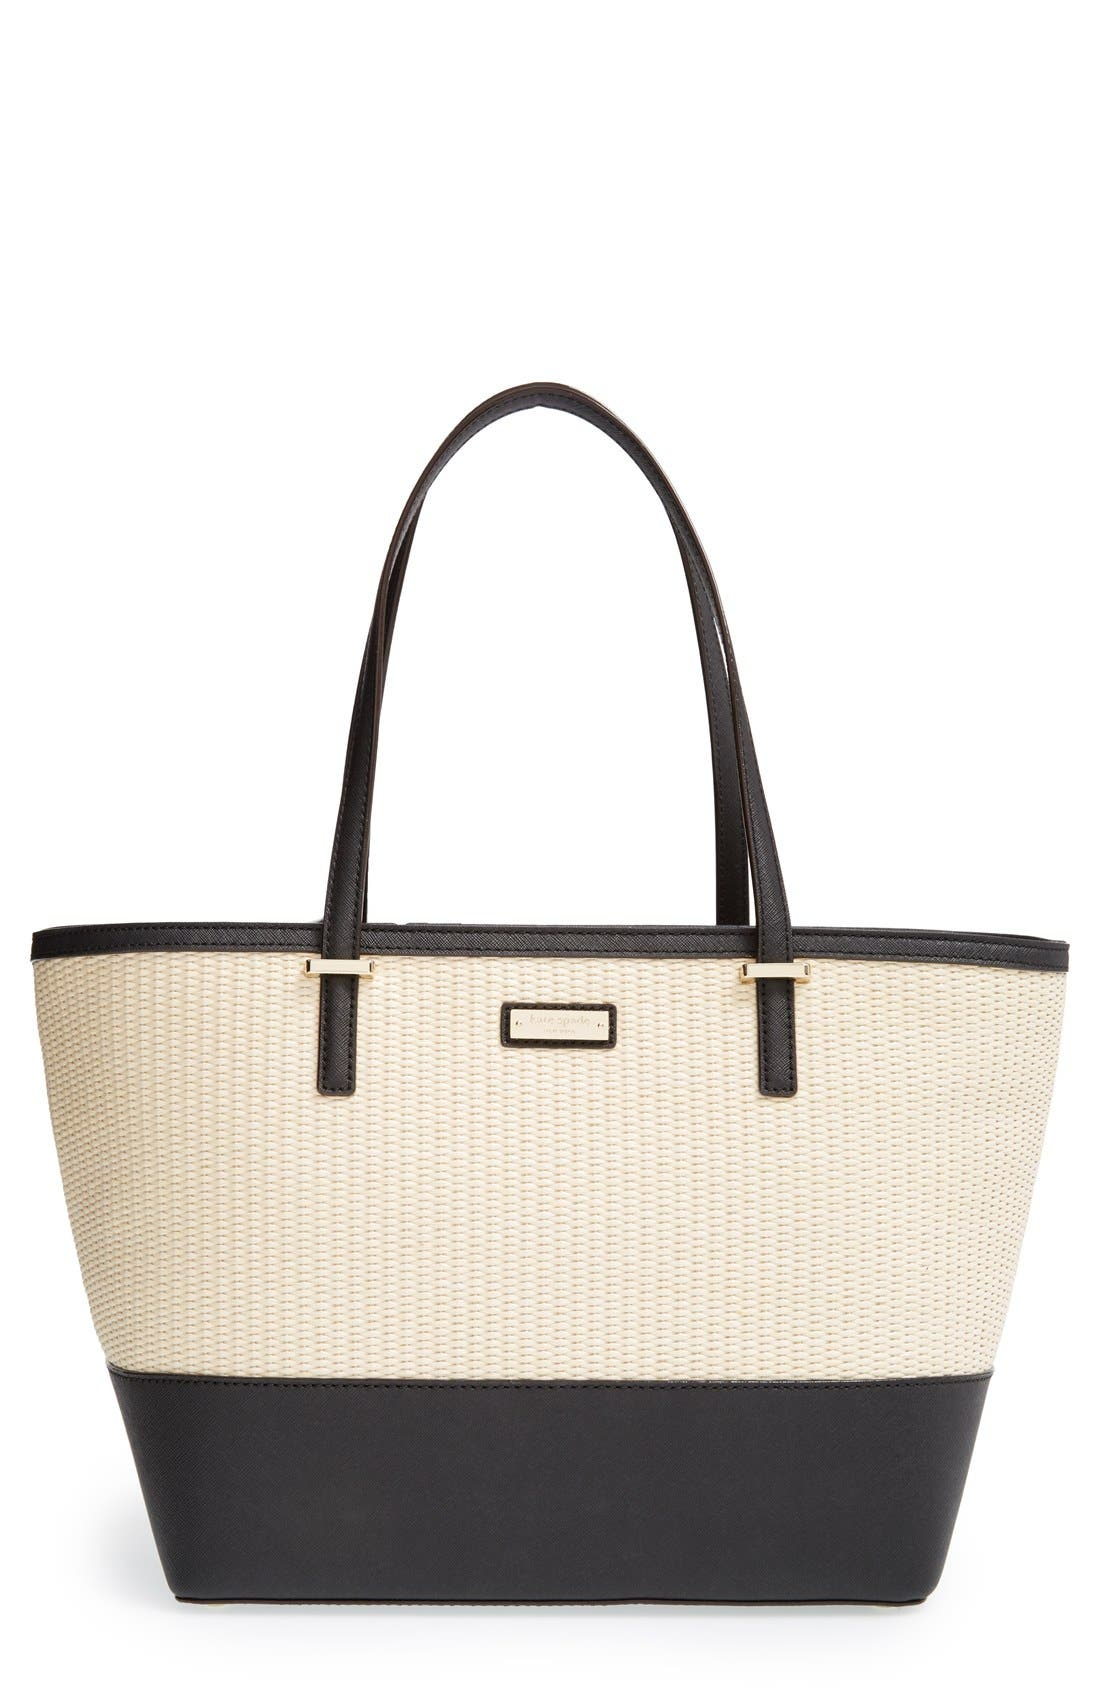 Alternate Image 1 Selected - kate spade new york 'cedar street harmony - small' woven tote